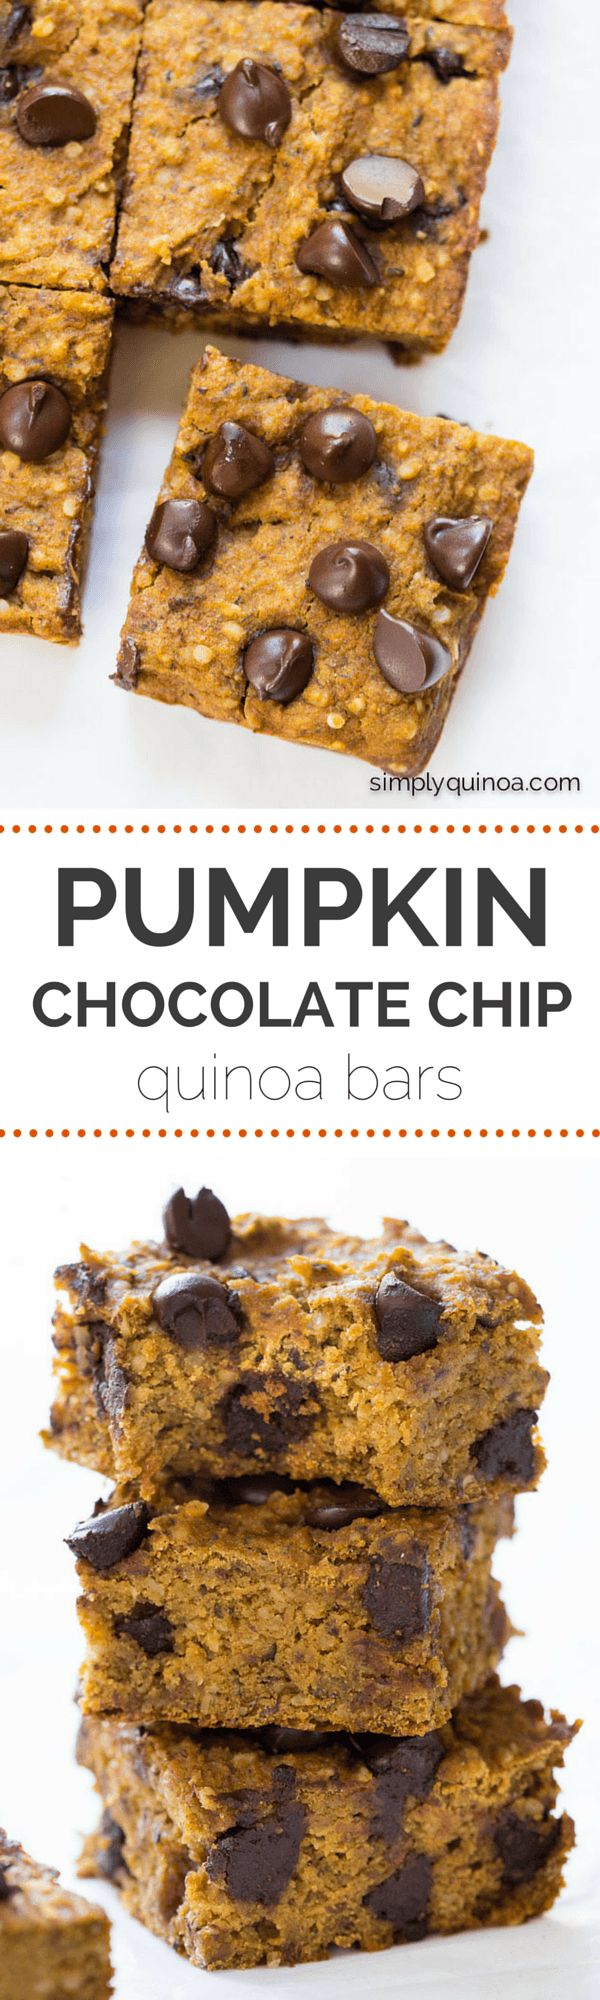 AMAZING pumpkin chocolate chip quinoa bars are packed with protein, naturally sweetened and low in fat! | gluten-free + vegan | simplyquinoa.com